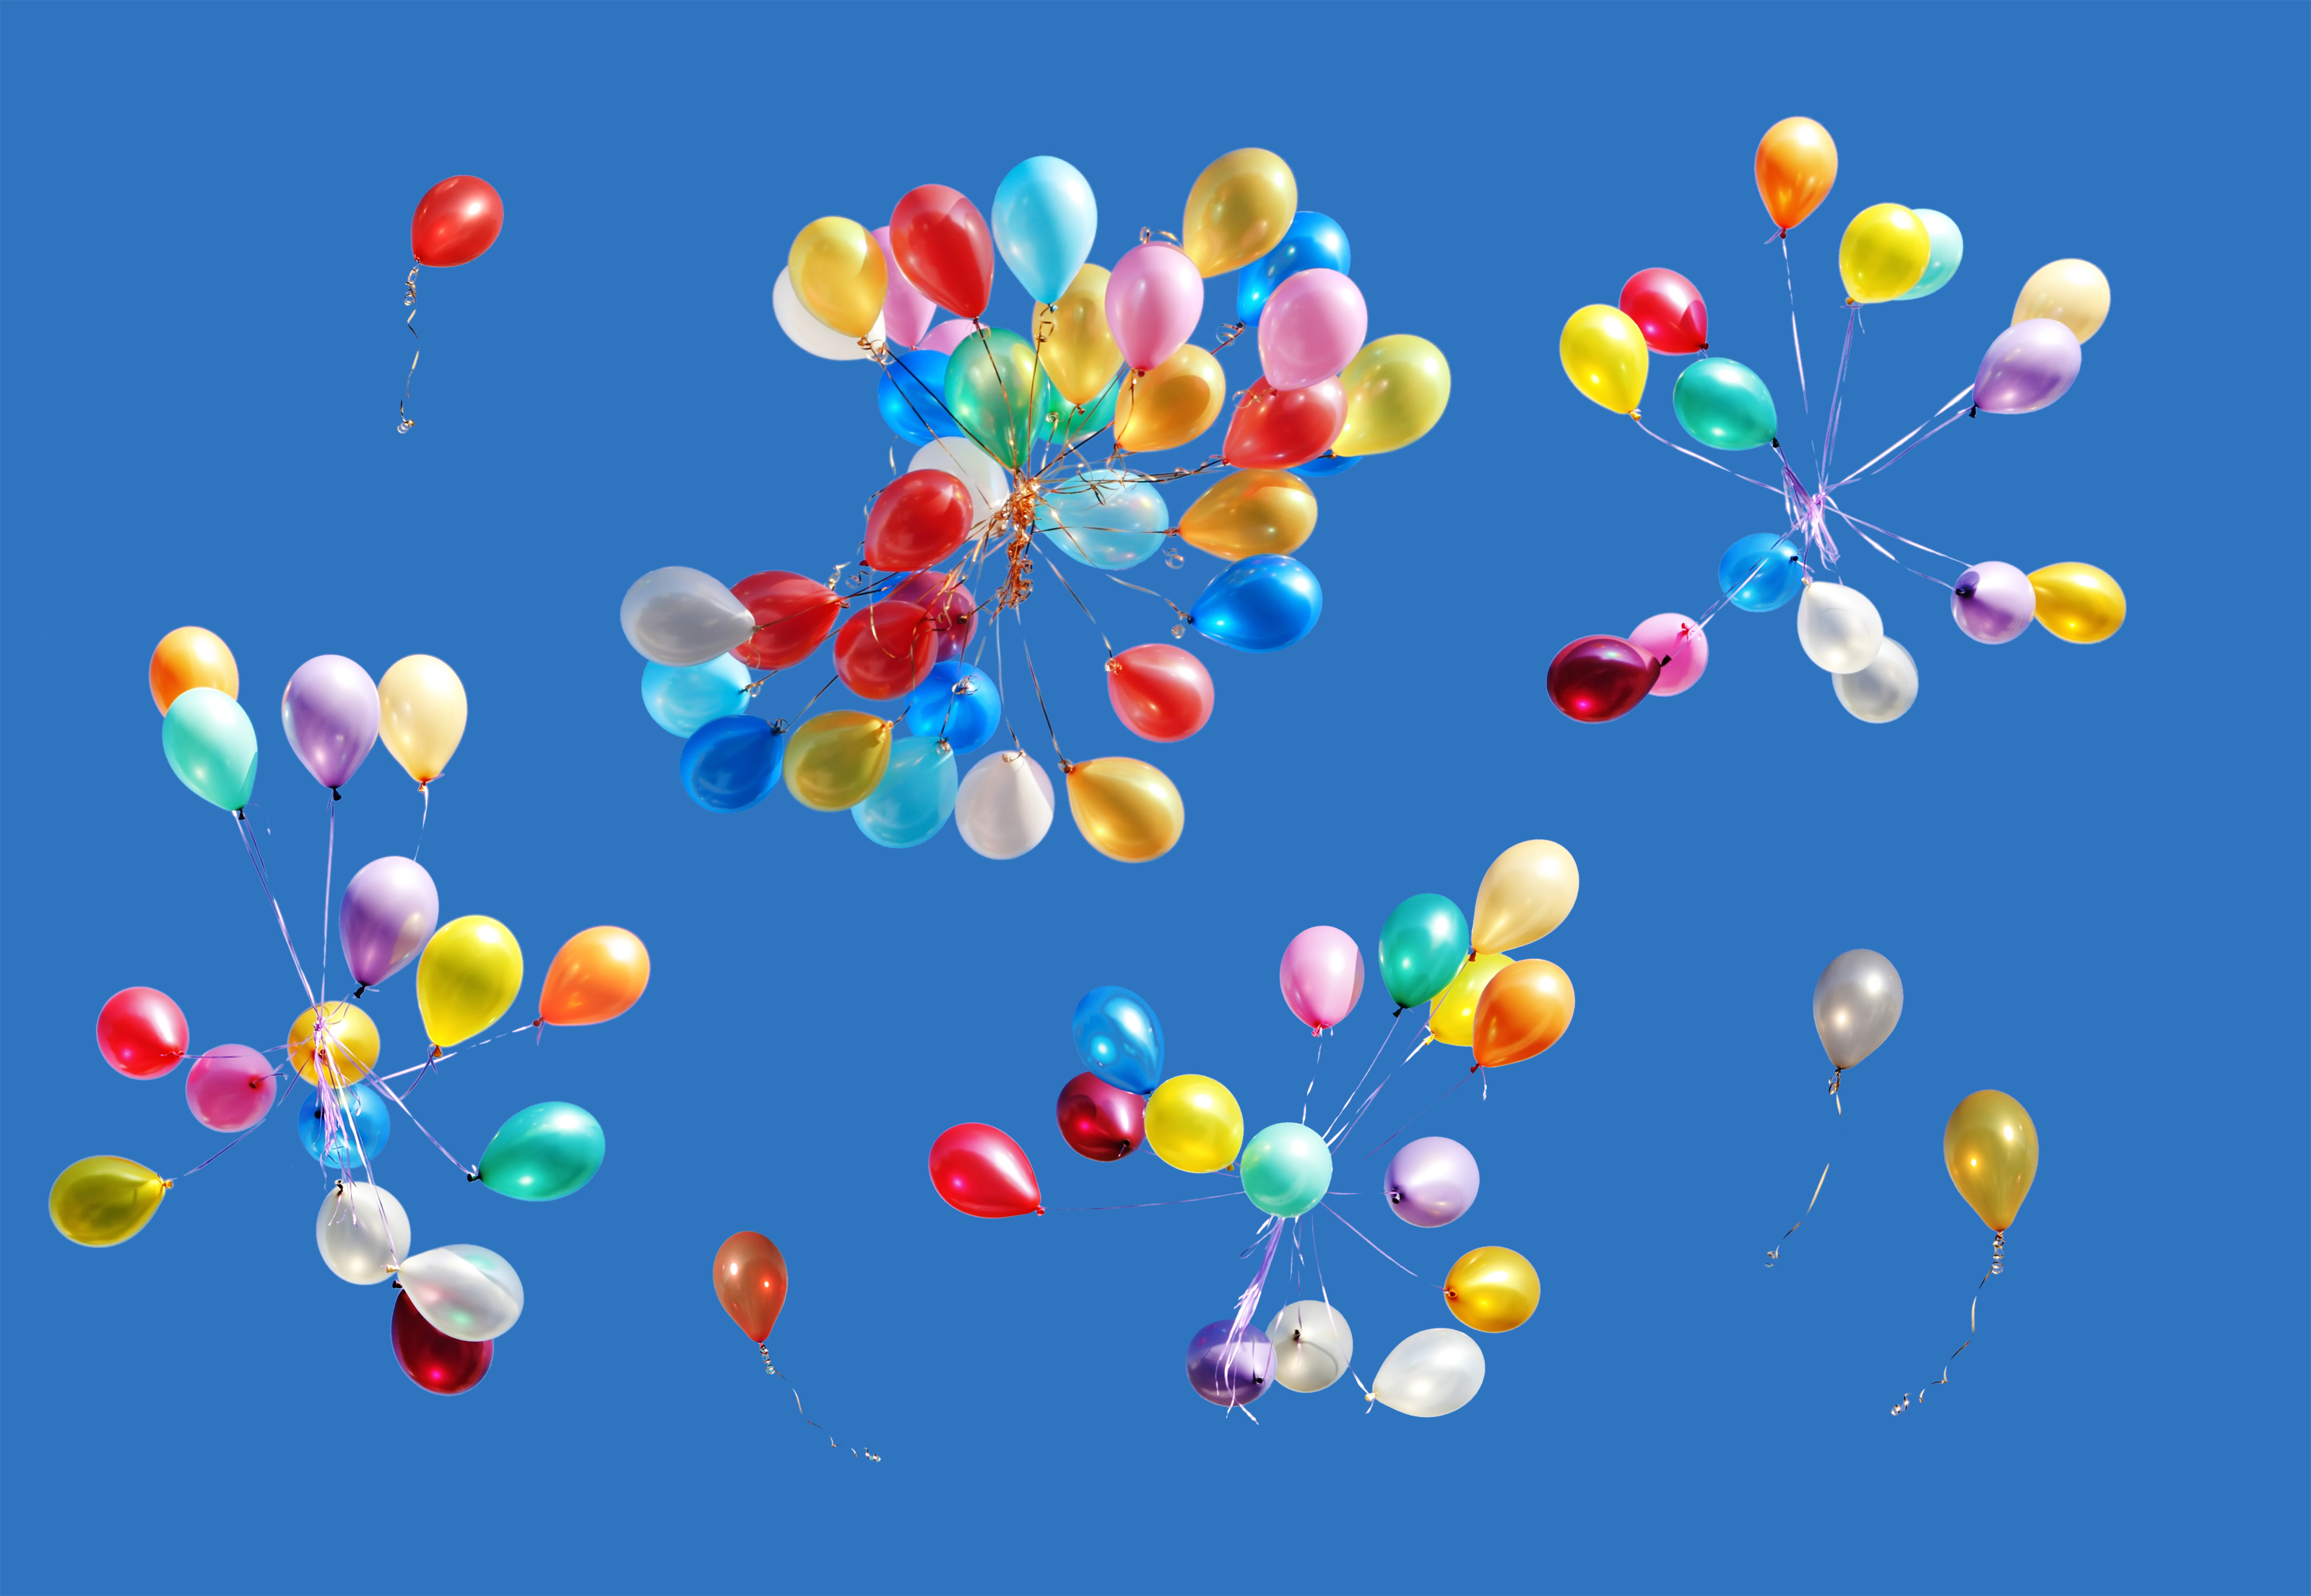 East Hampton Town might ban the intentional release of balloons to protect wildlife